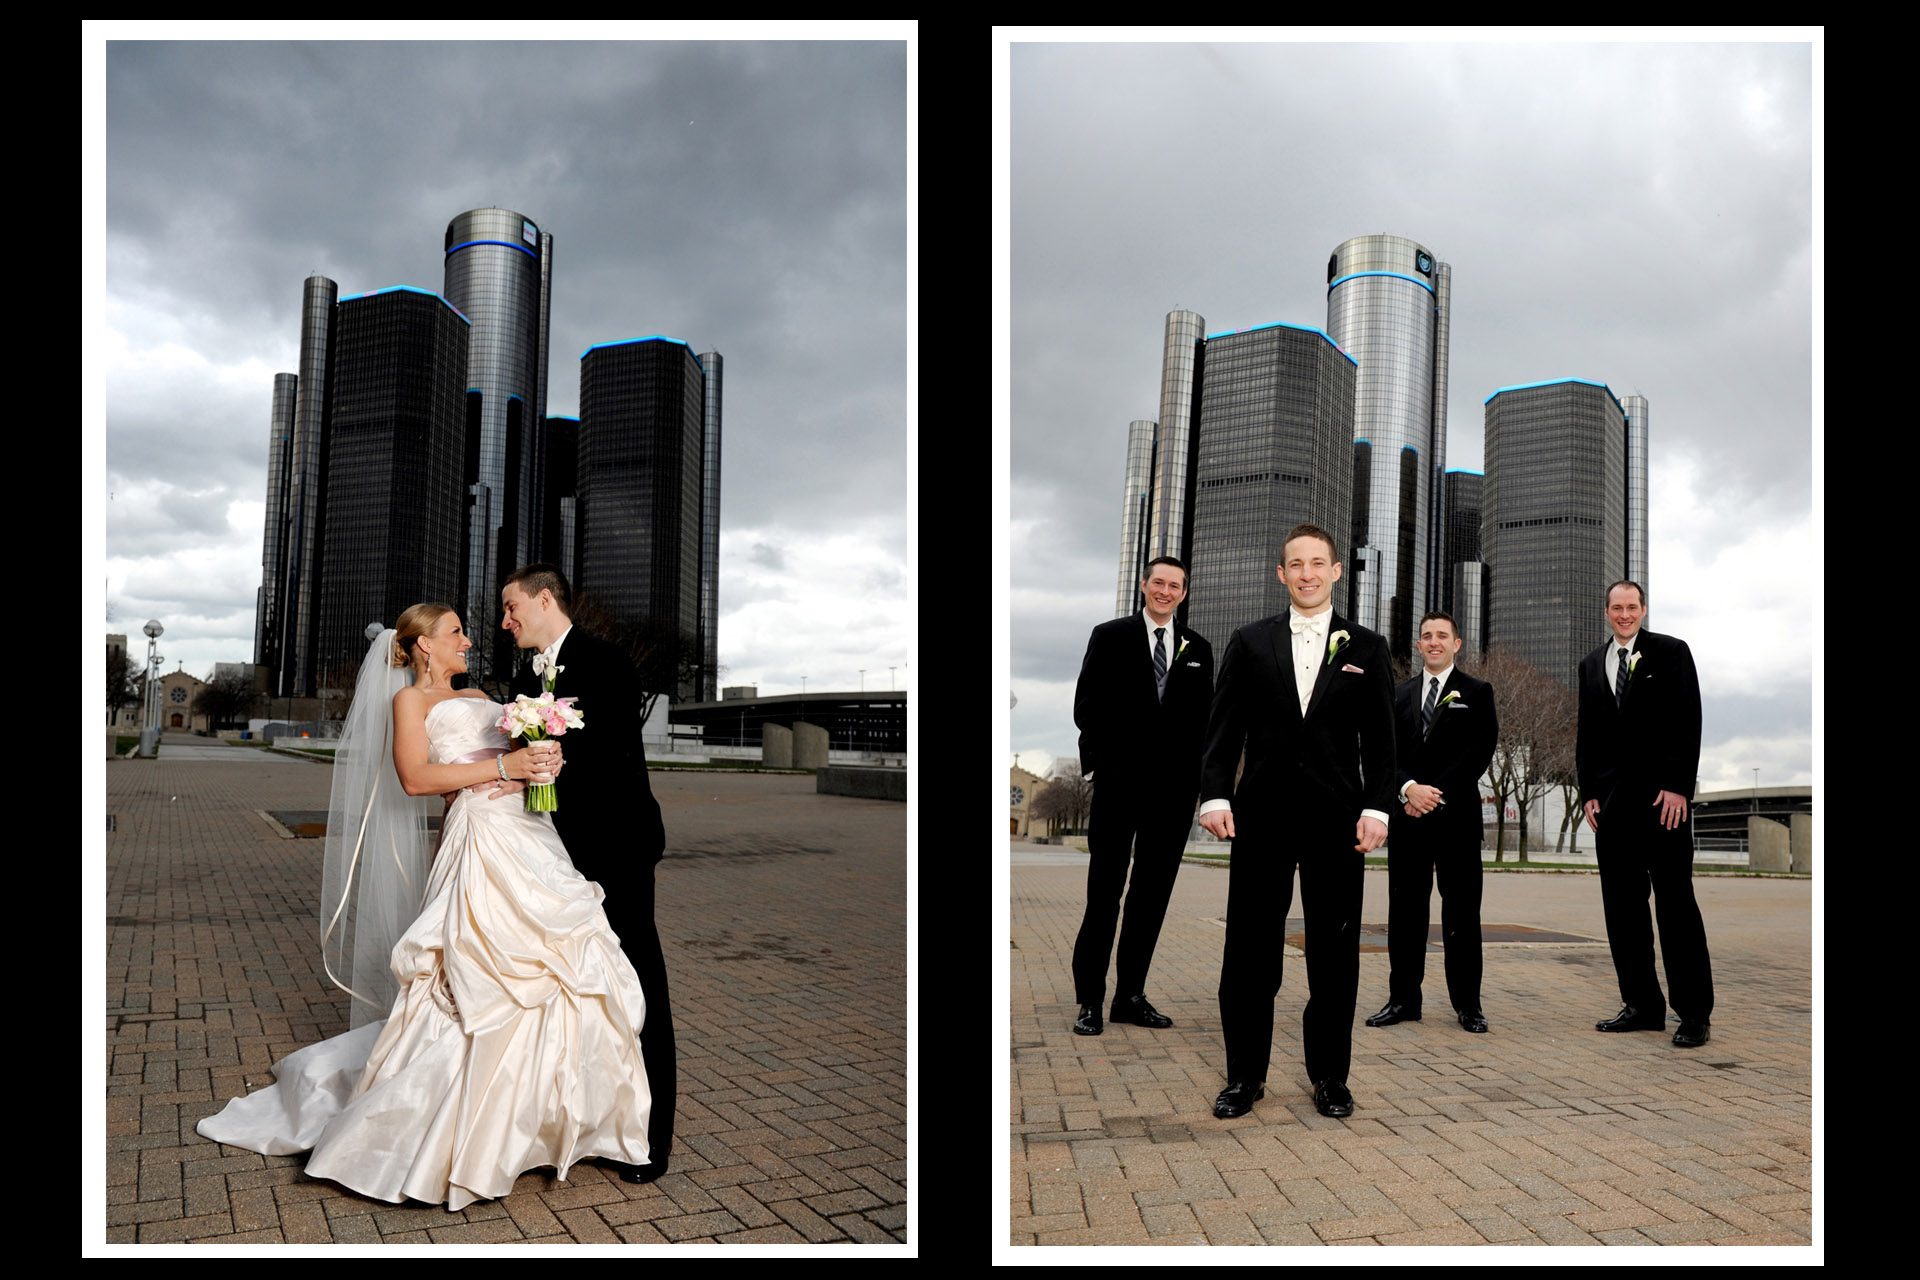 A windy winter wedding in Michigan showcases Michigan wedding photographer's photograph of the bride and groom and the groomsmen at Hart Plaza in Detroit after their wedding venue St. Aloysius Detroit, Michigan and the Detroit Athletic Club.